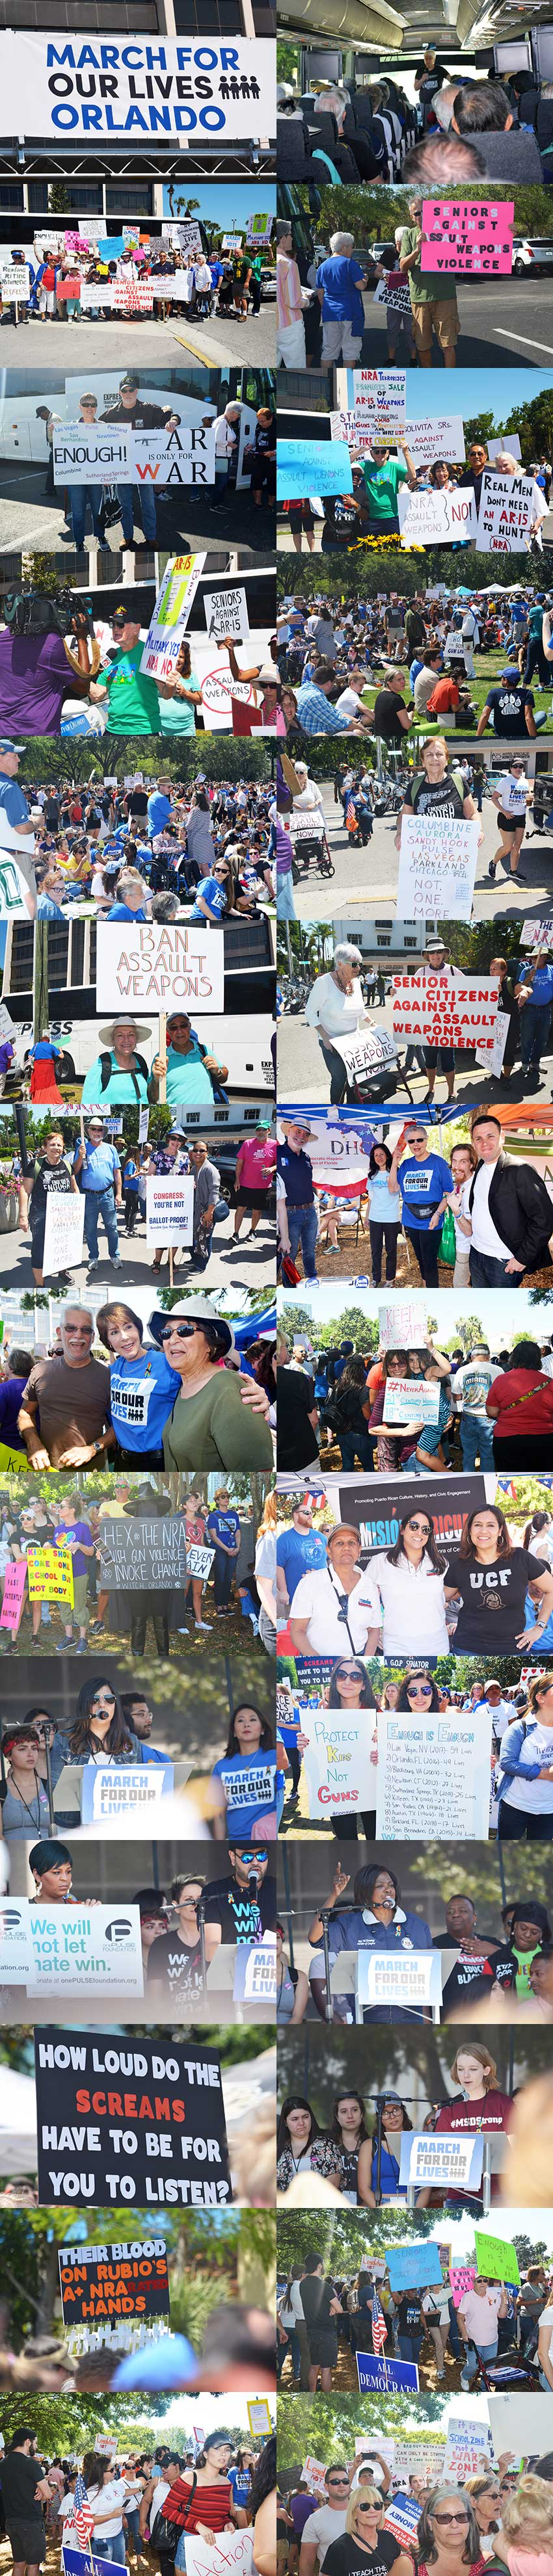 Polk Democrats traveled to Orlando by bus to participate in thei